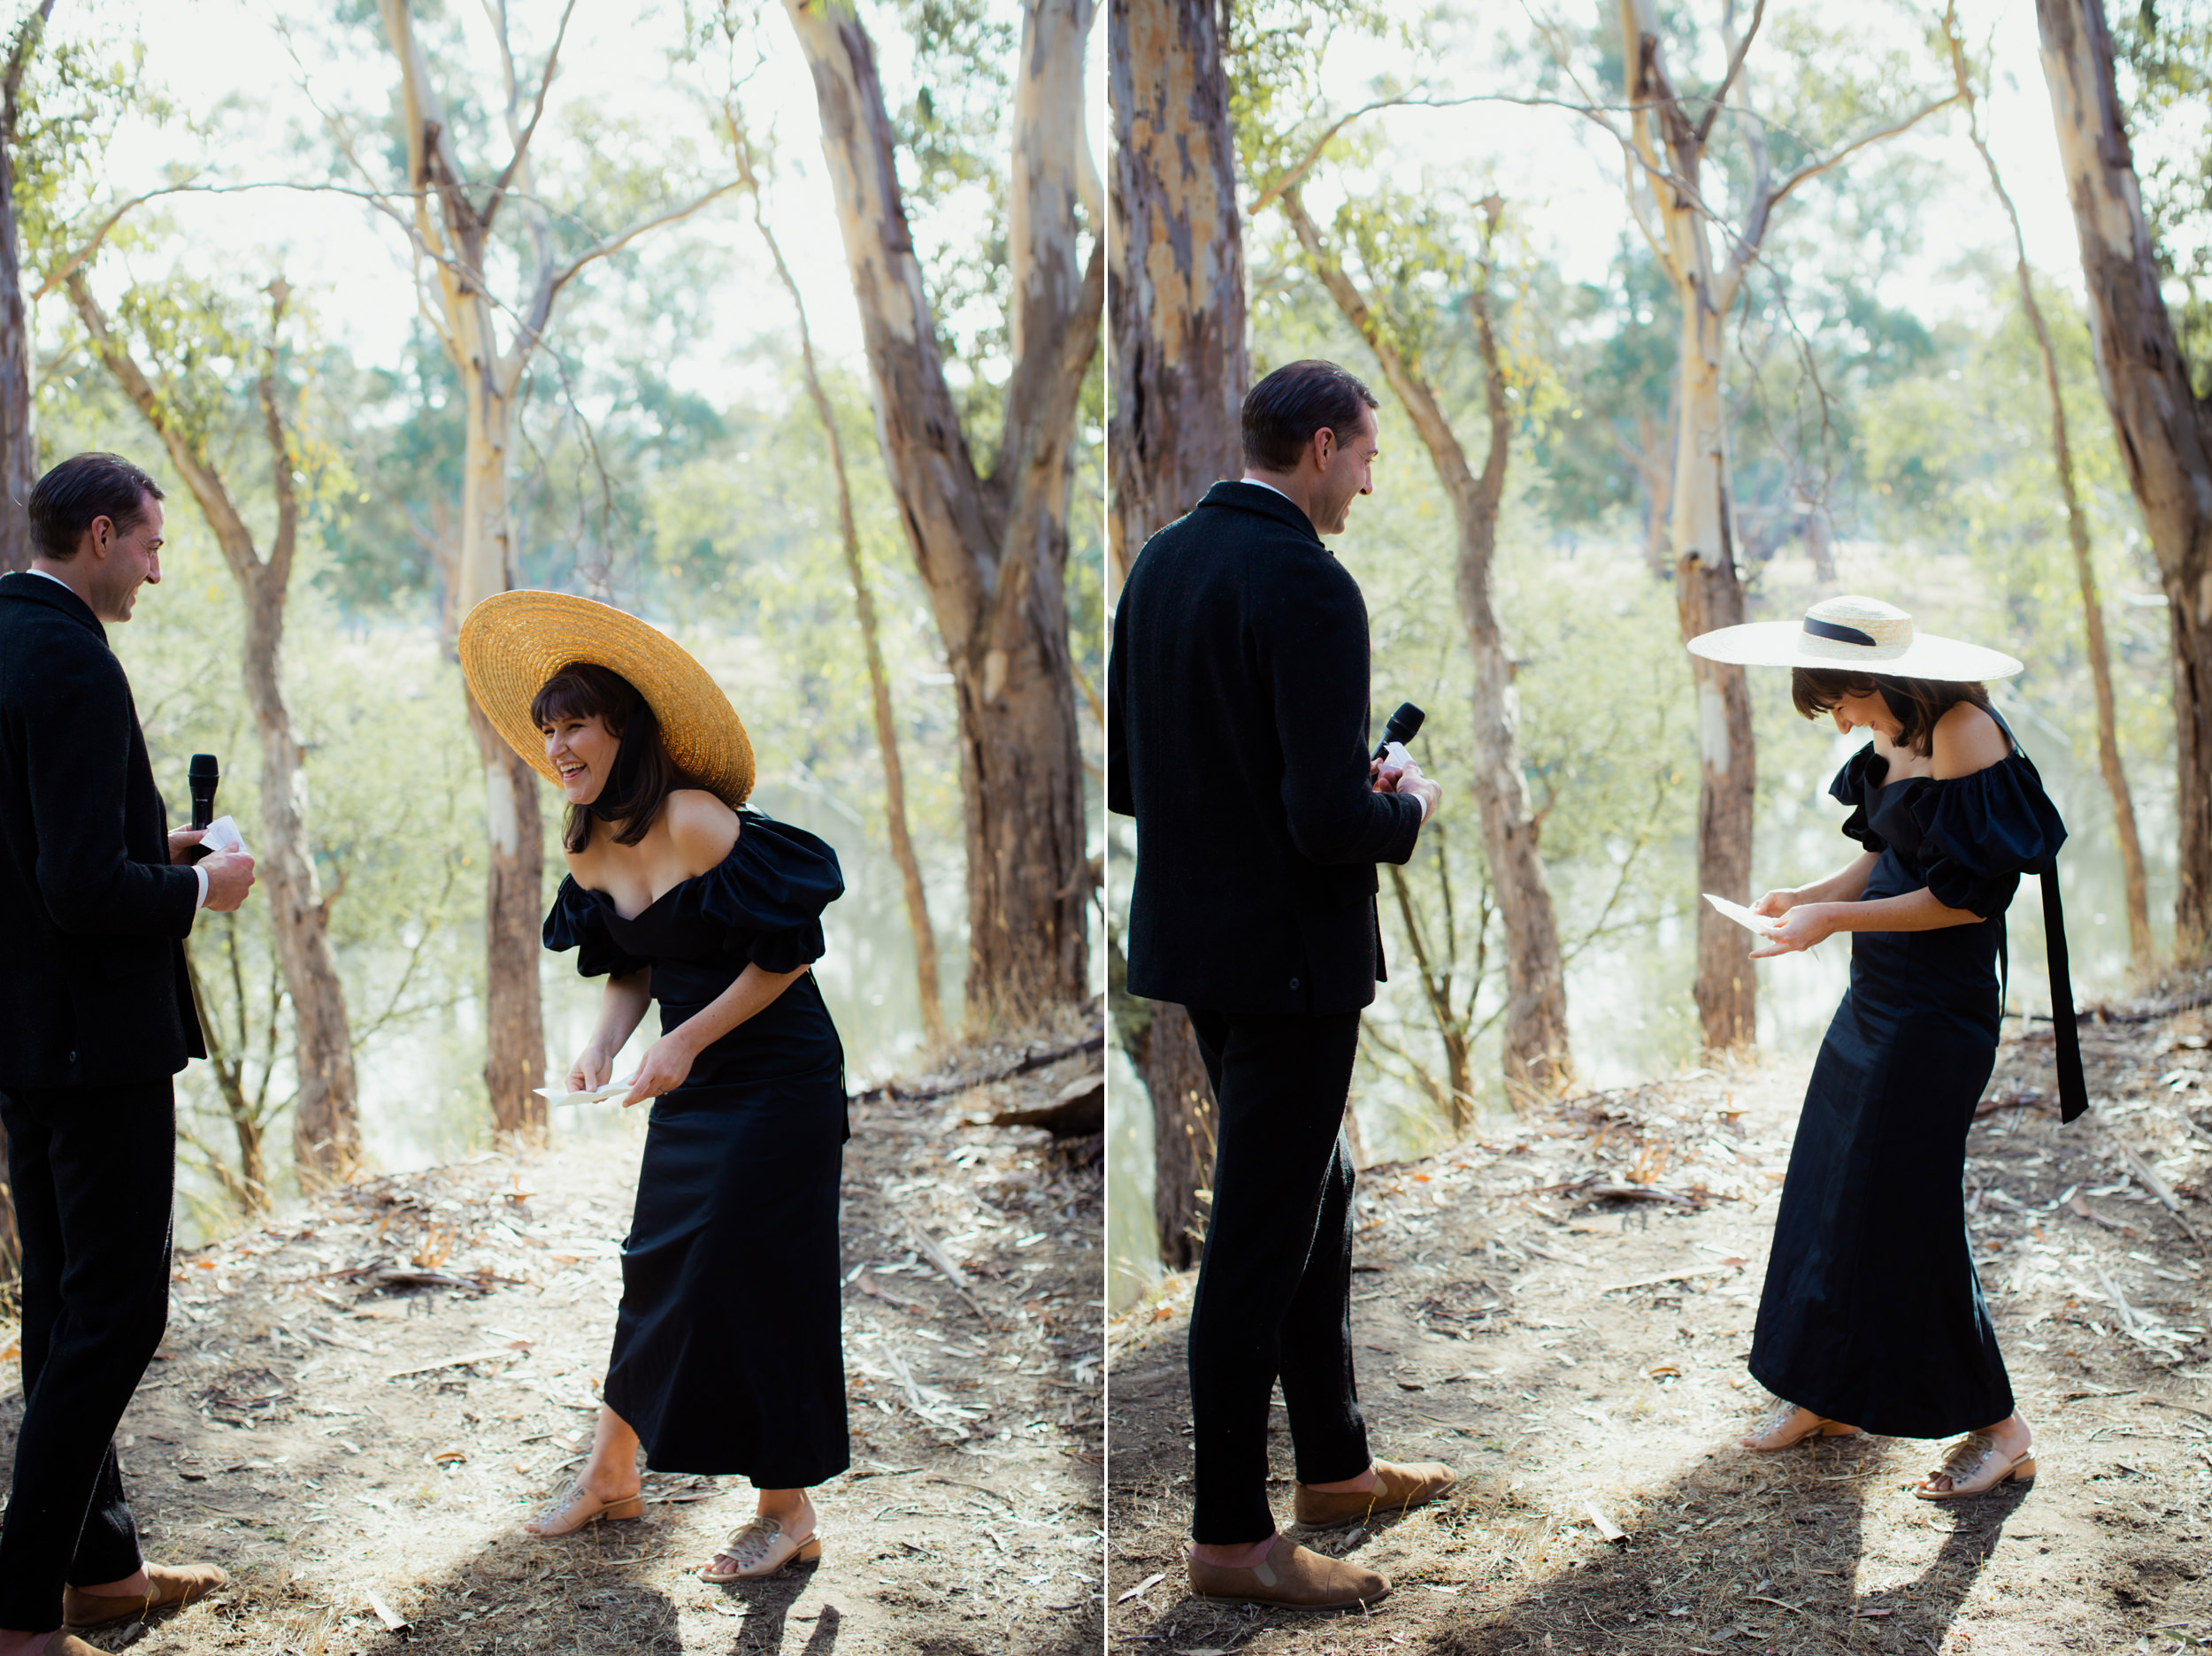 I-Got-You-Babe-Weddings-Claire-Dave-Trawol-VIC-Country-Property-Wedding117.JPG